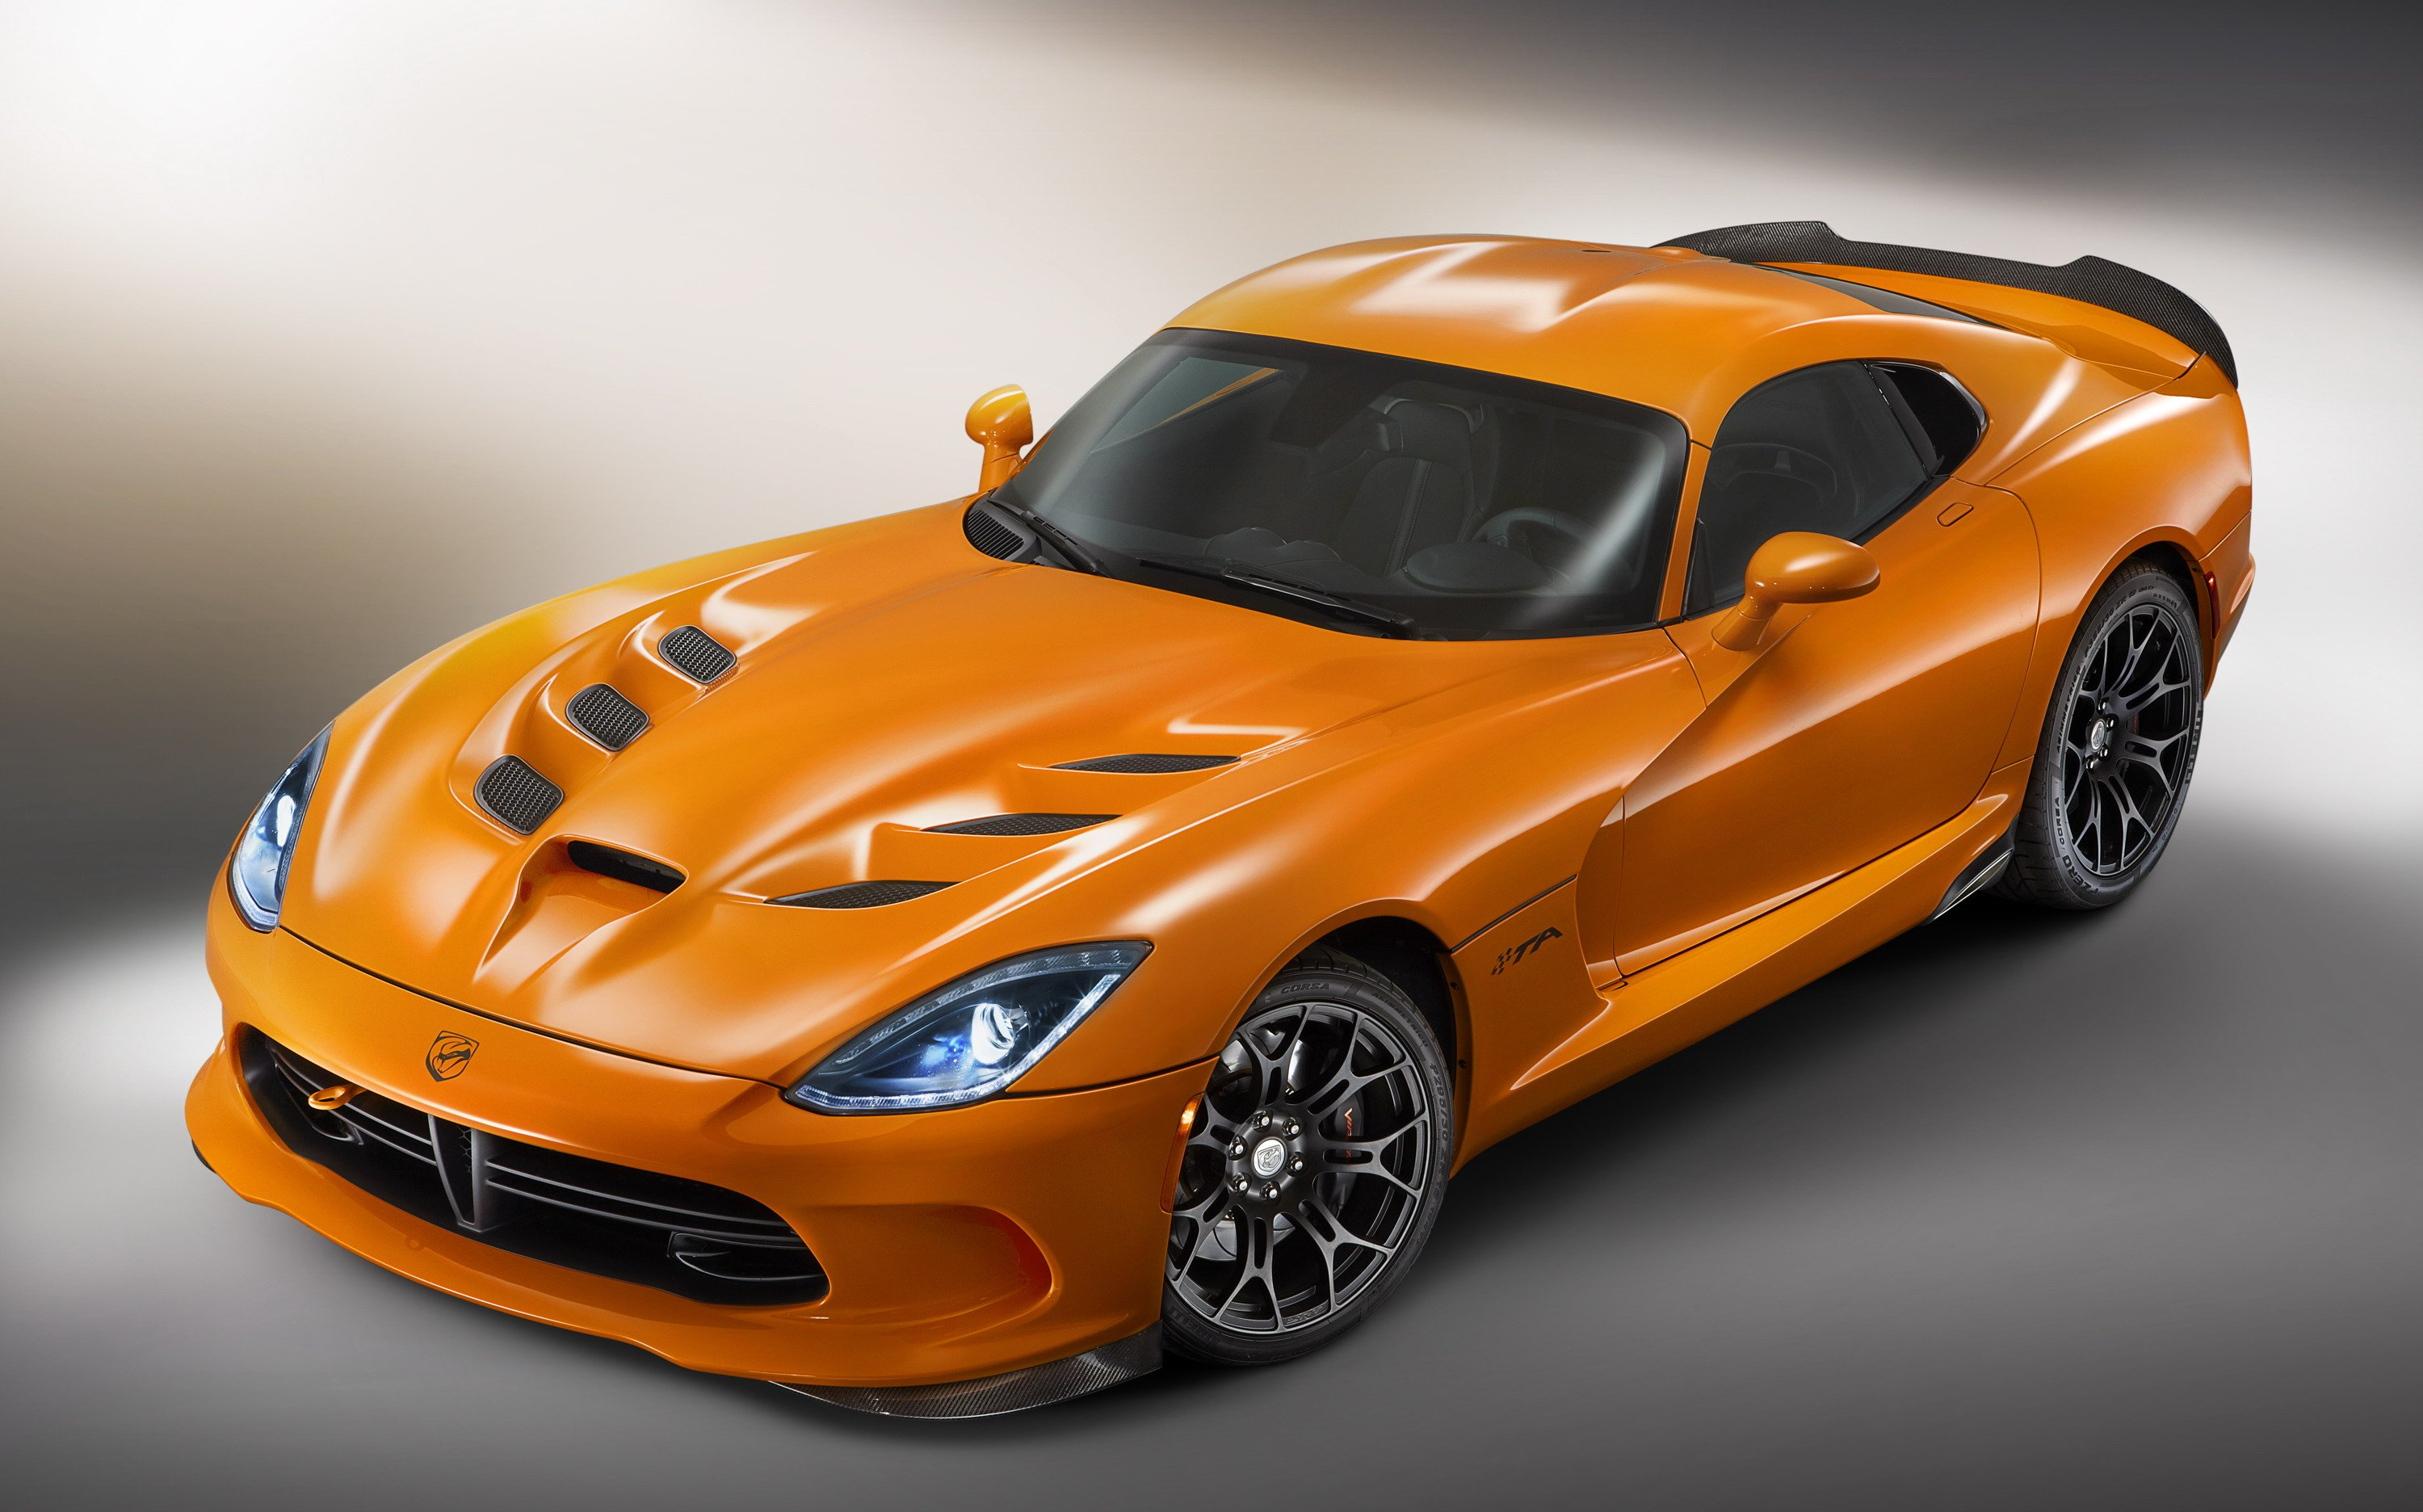 57 All New 2020 Dodge Viper News Wallpaper with 2020 Dodge Viper News